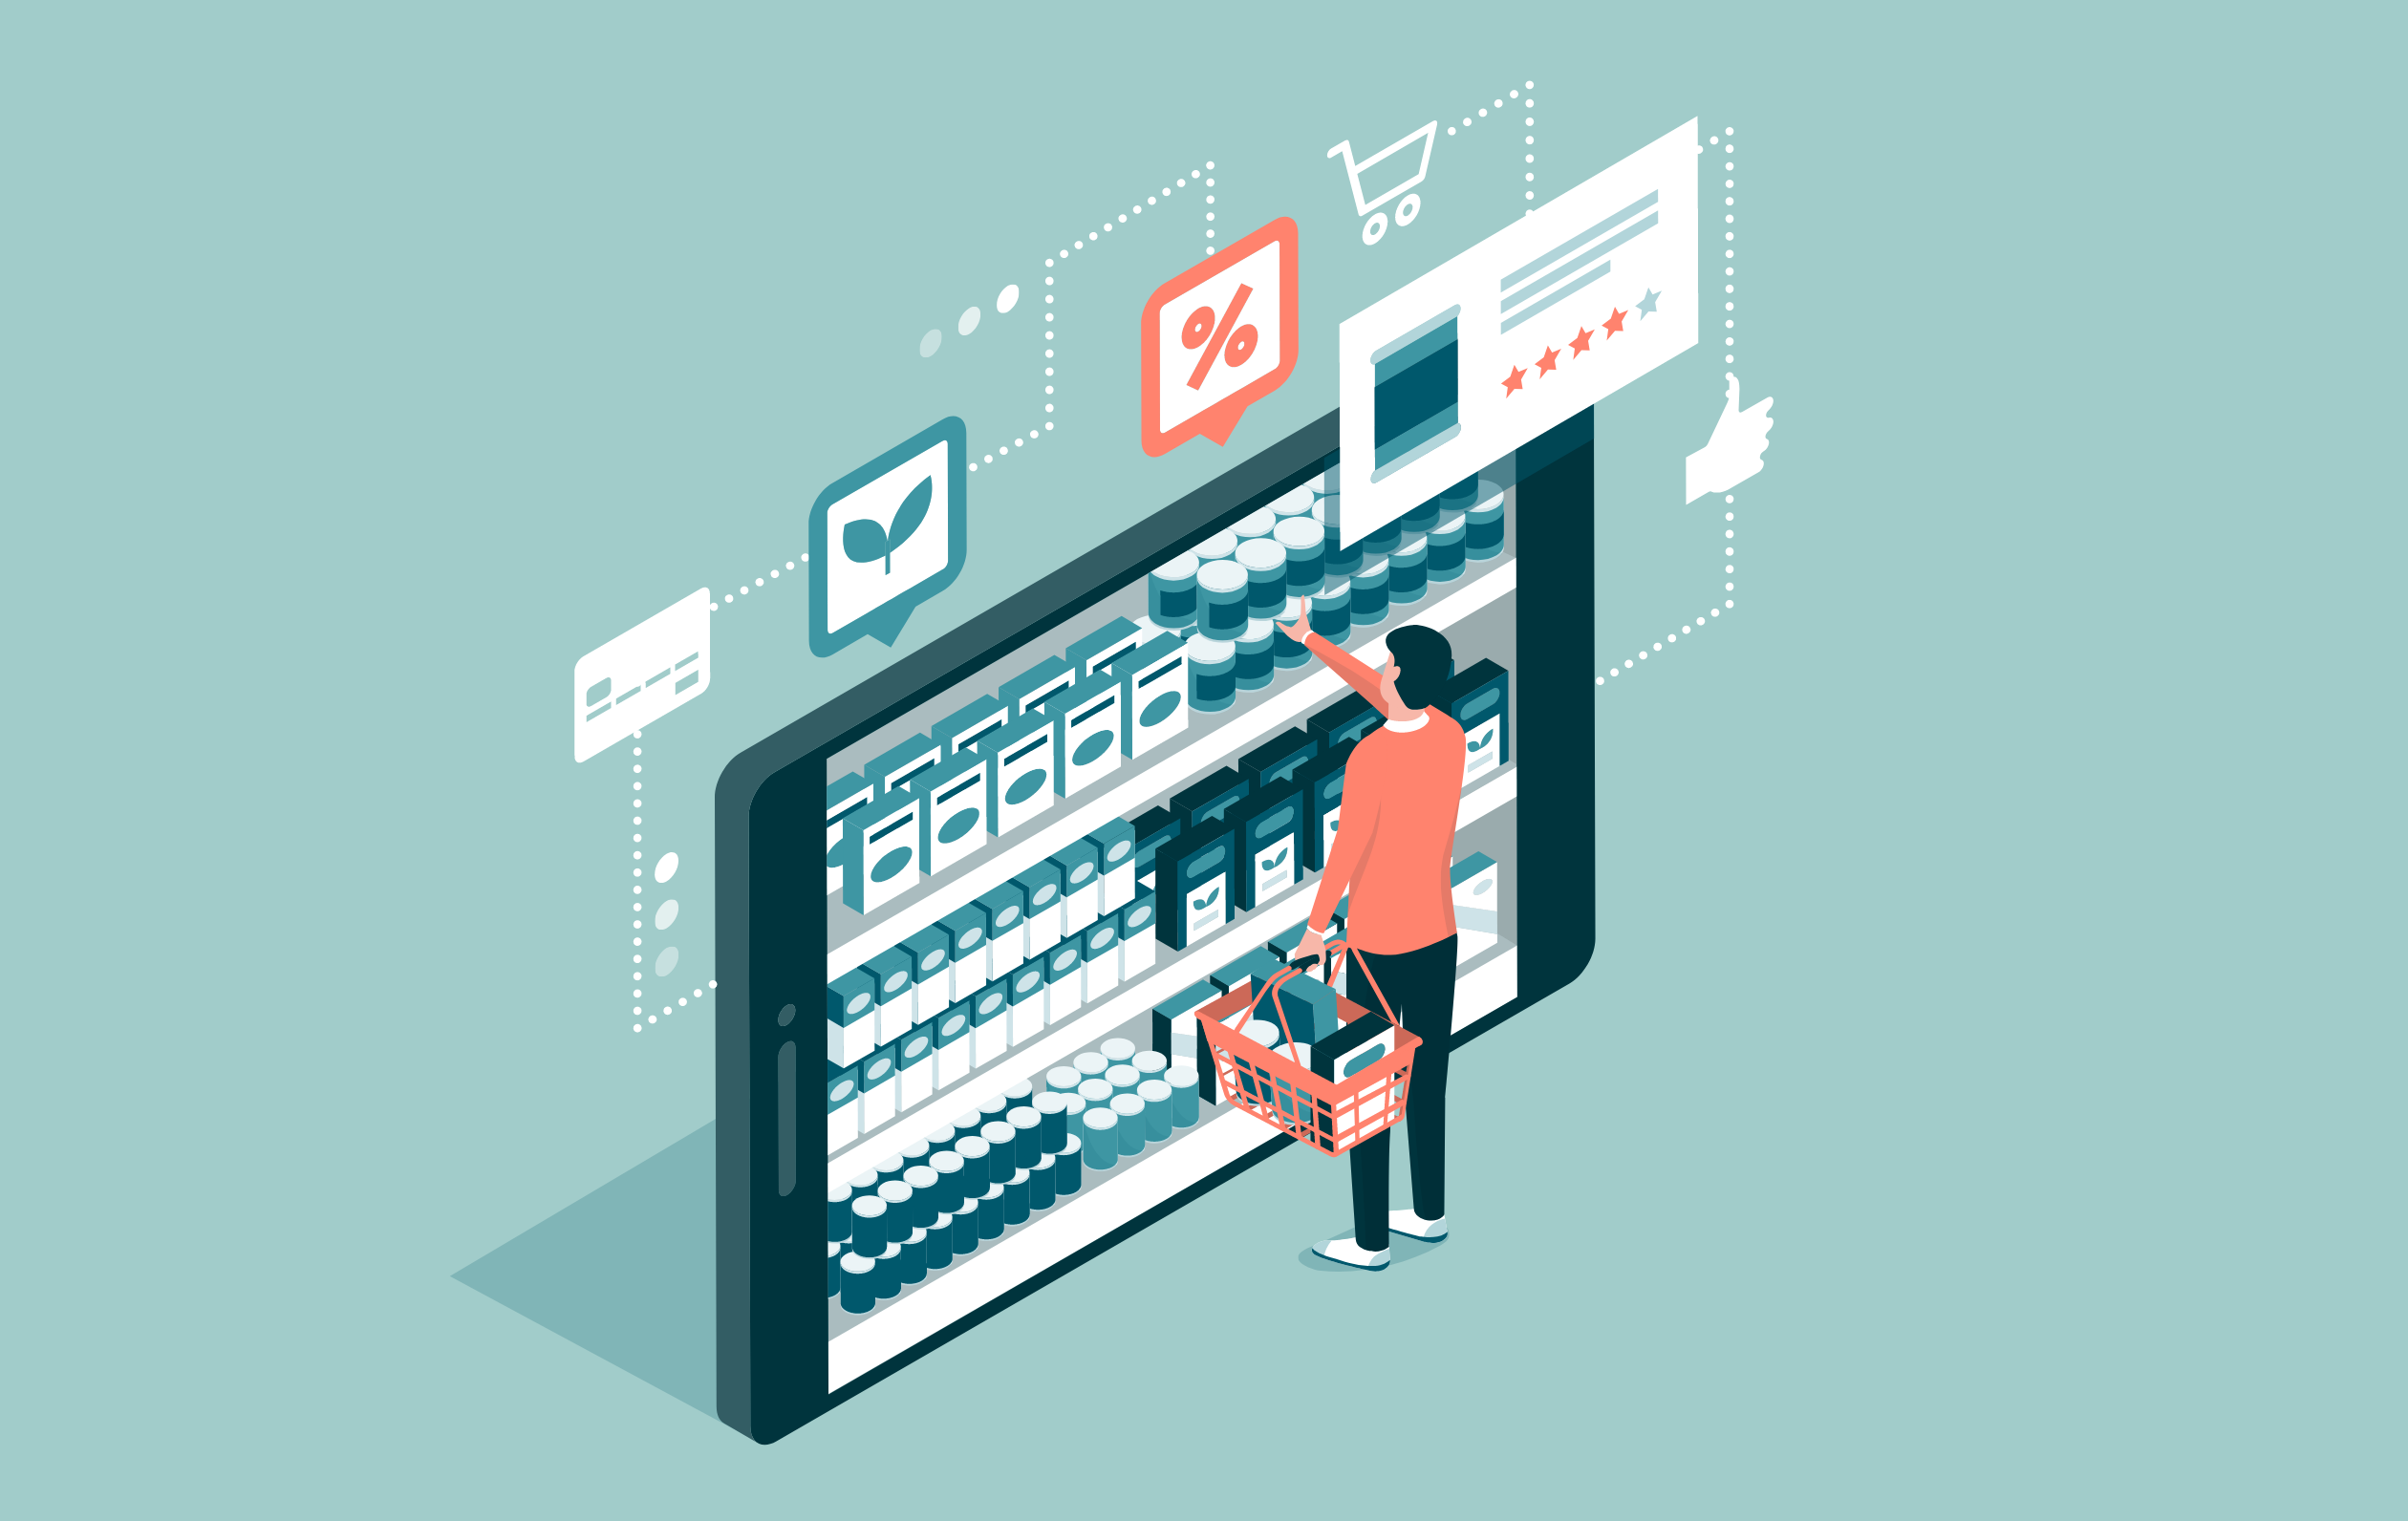 Illusration of a person shopping and picking items from the shelf that looks like a smart phone screen